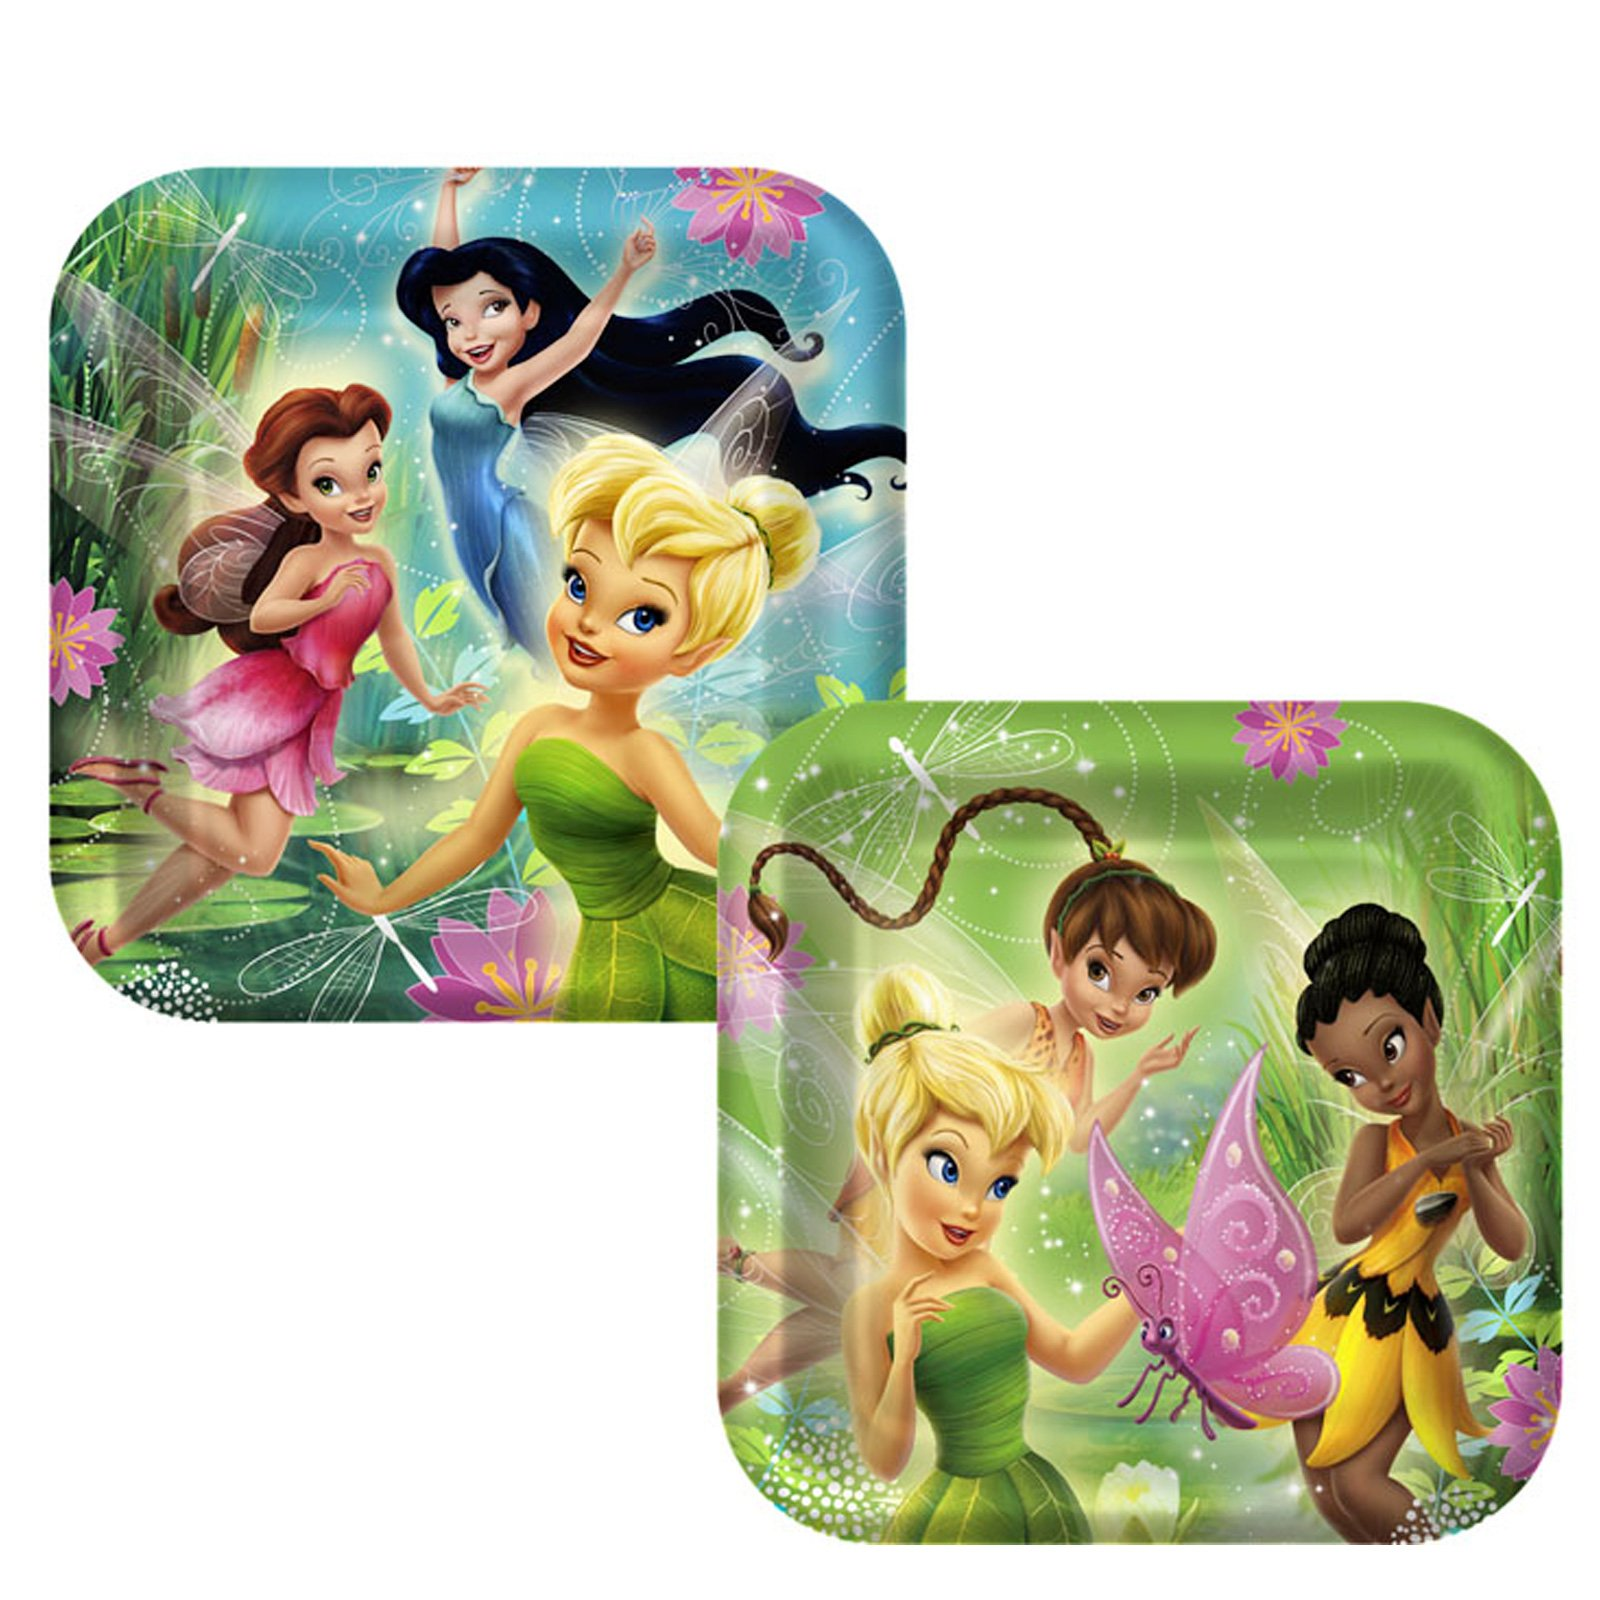 Disney's Fairies Square Dinner Plates Assorted (8 count)